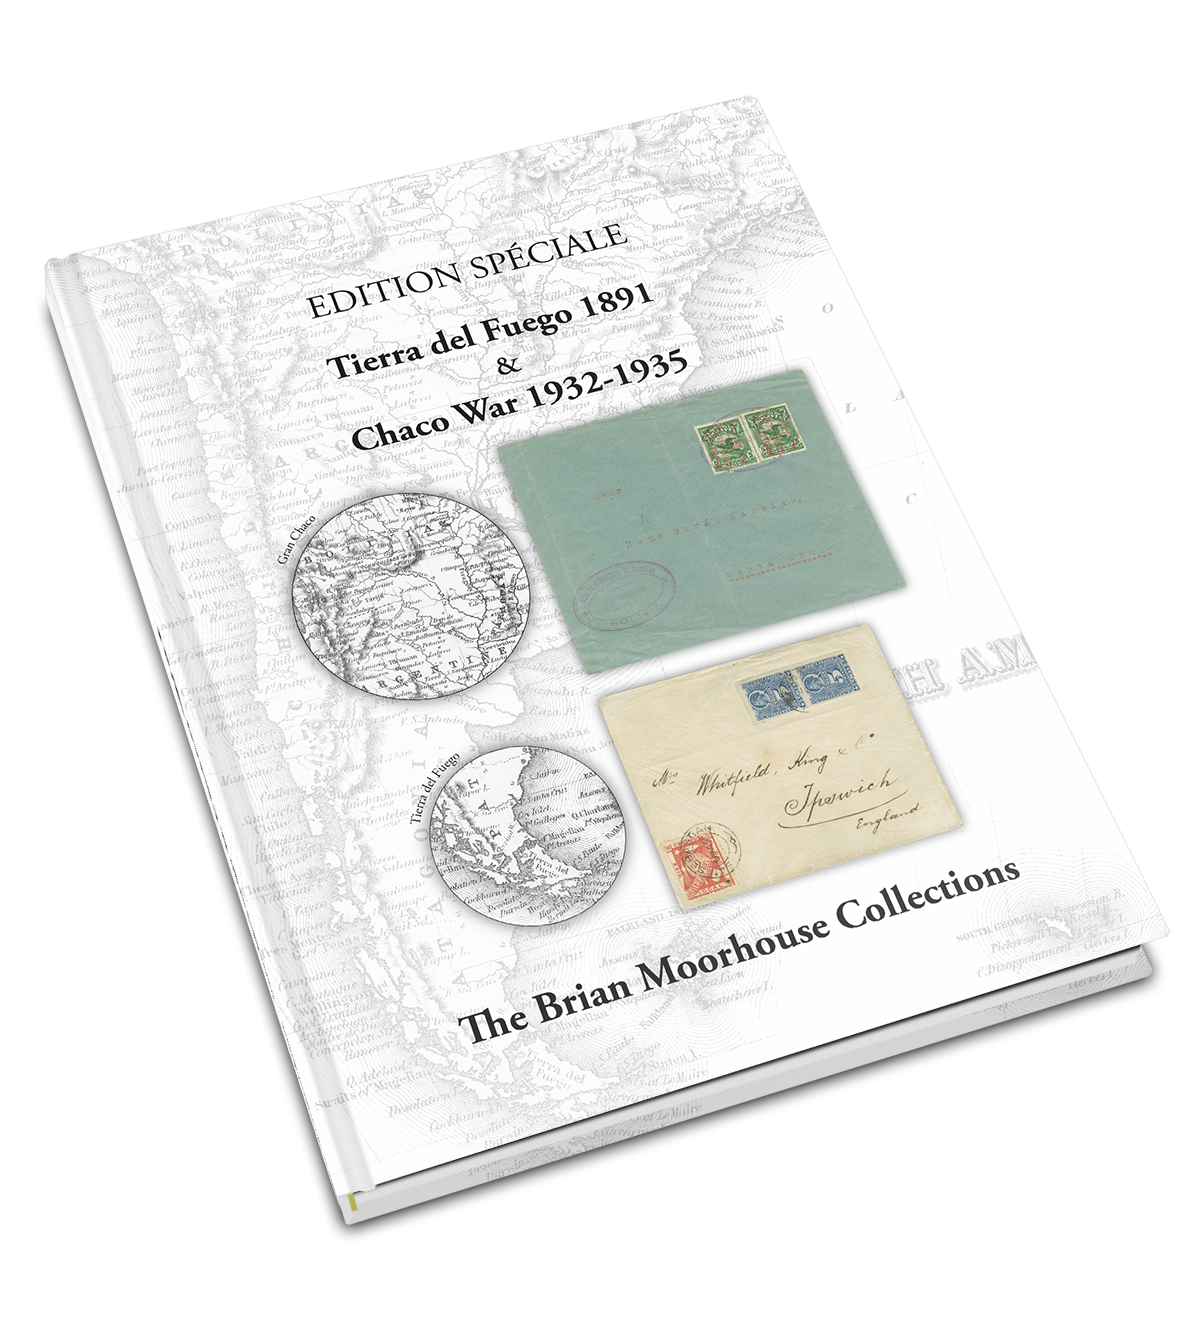 EDITION SPÉCIALE: Tierra del Fuego 1891 & Chaco War 1932-1935 - The Brian Moorhouse Collections